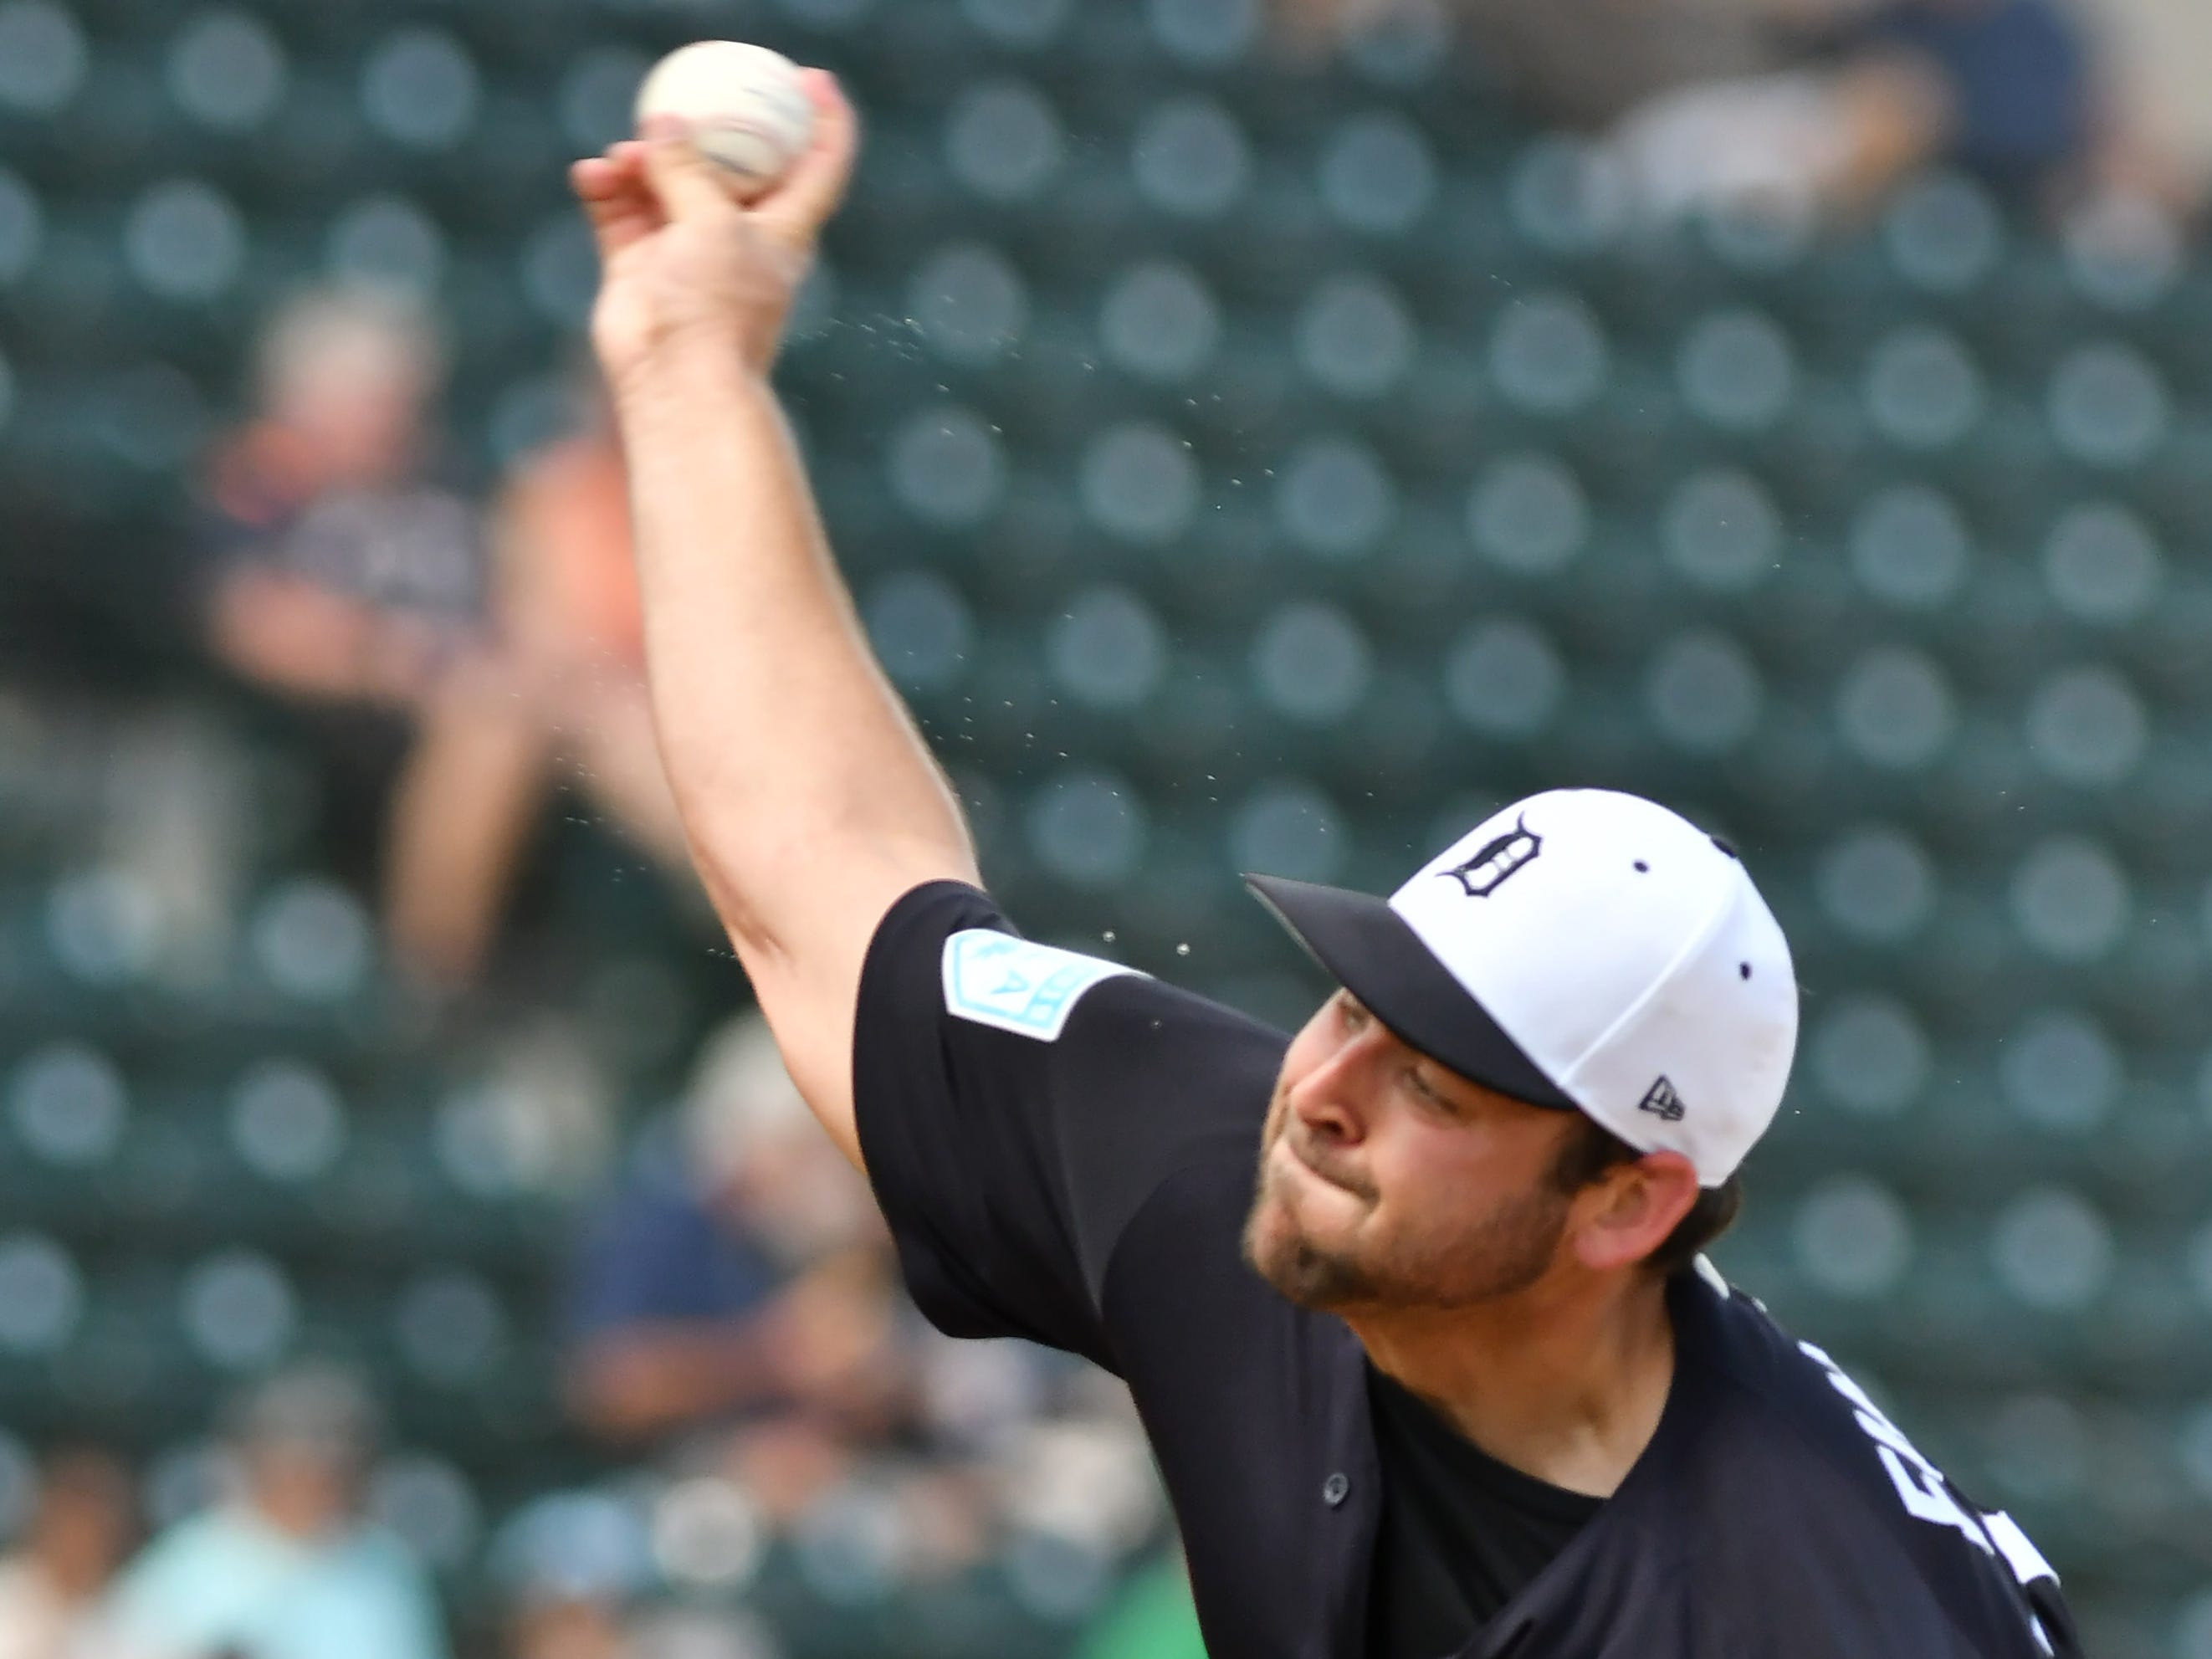 Tigers pitcher Michael Fulmer works in the first inning. Detroit Tigers outscored the  New York Yankees 10-6 in a weather-shortened game at Publix Field at Joker Marchant Stadium in Lakeland, Fla. on Feb. 27, 2019.